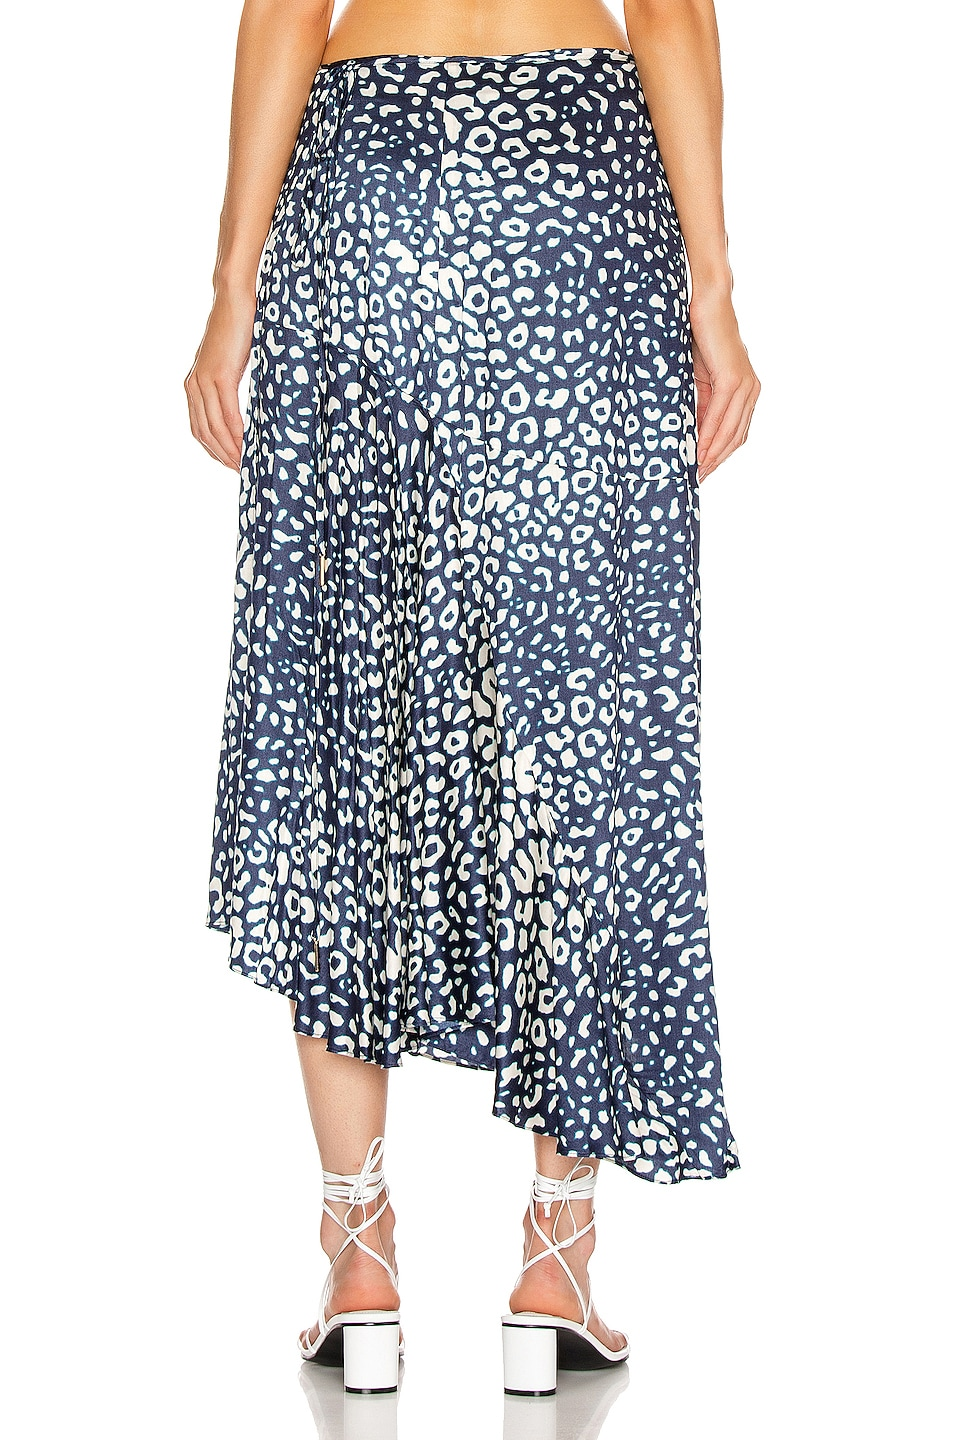 Image 3 of Alexis Fontaine Skirt in Marine Leopard